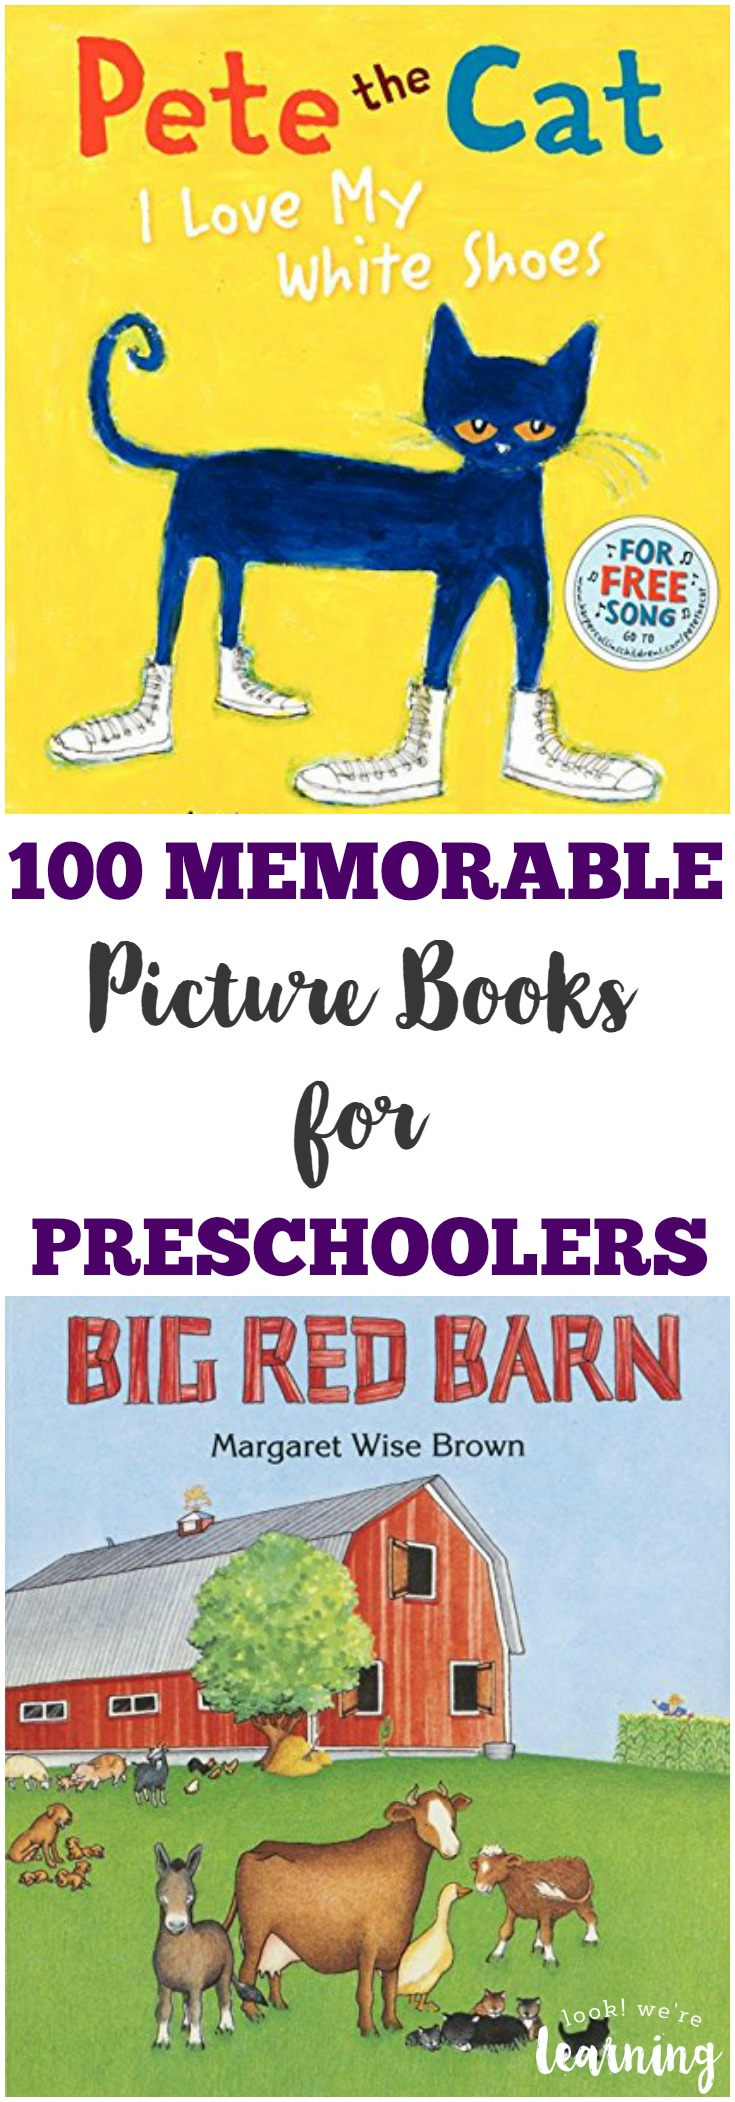 100 Memorable Picture Books for Preschoolers - Look! We're Learning!